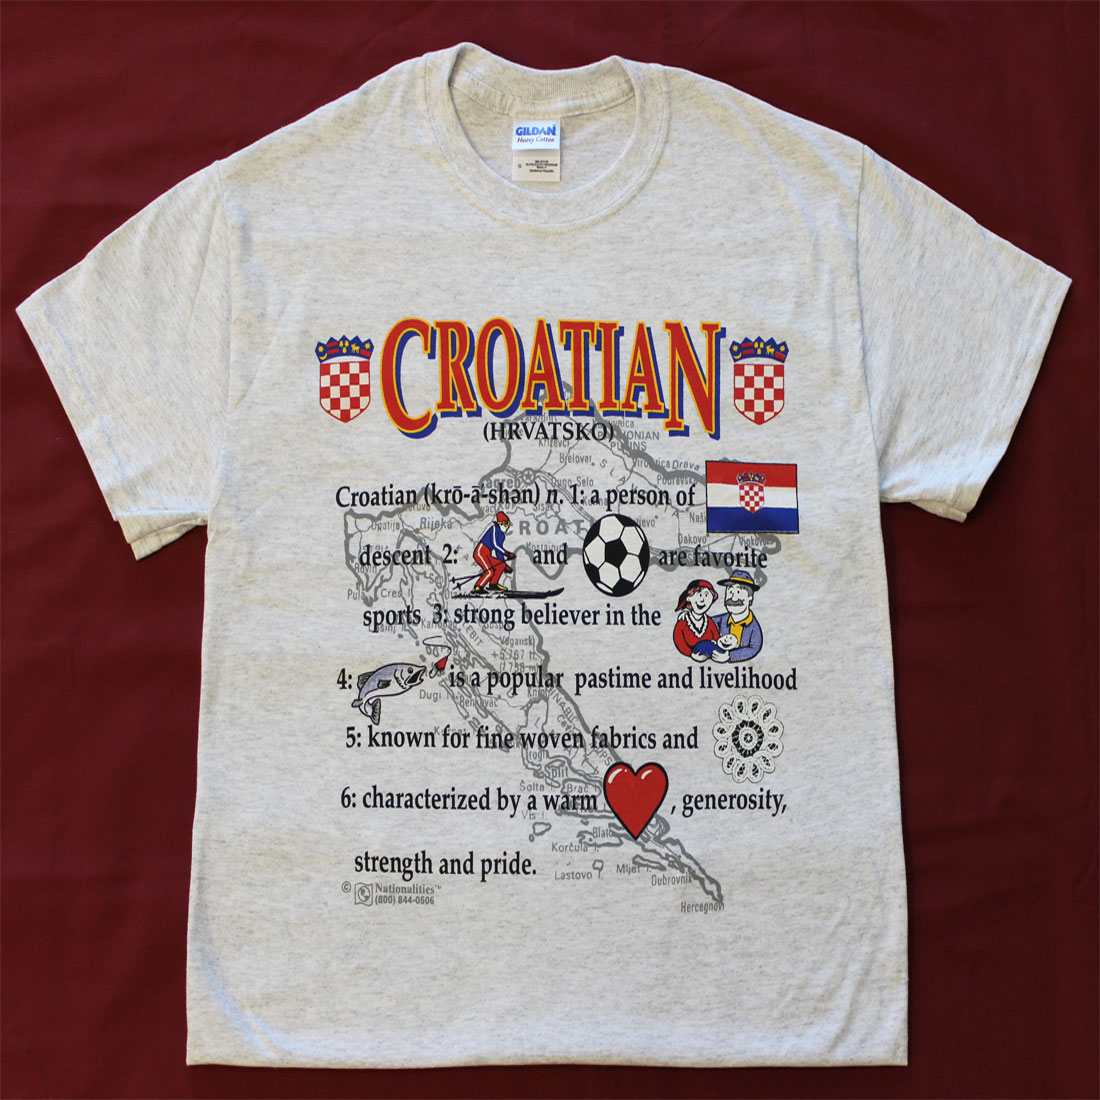 Buy Definition: Buy Croatia Definition T-Shirt